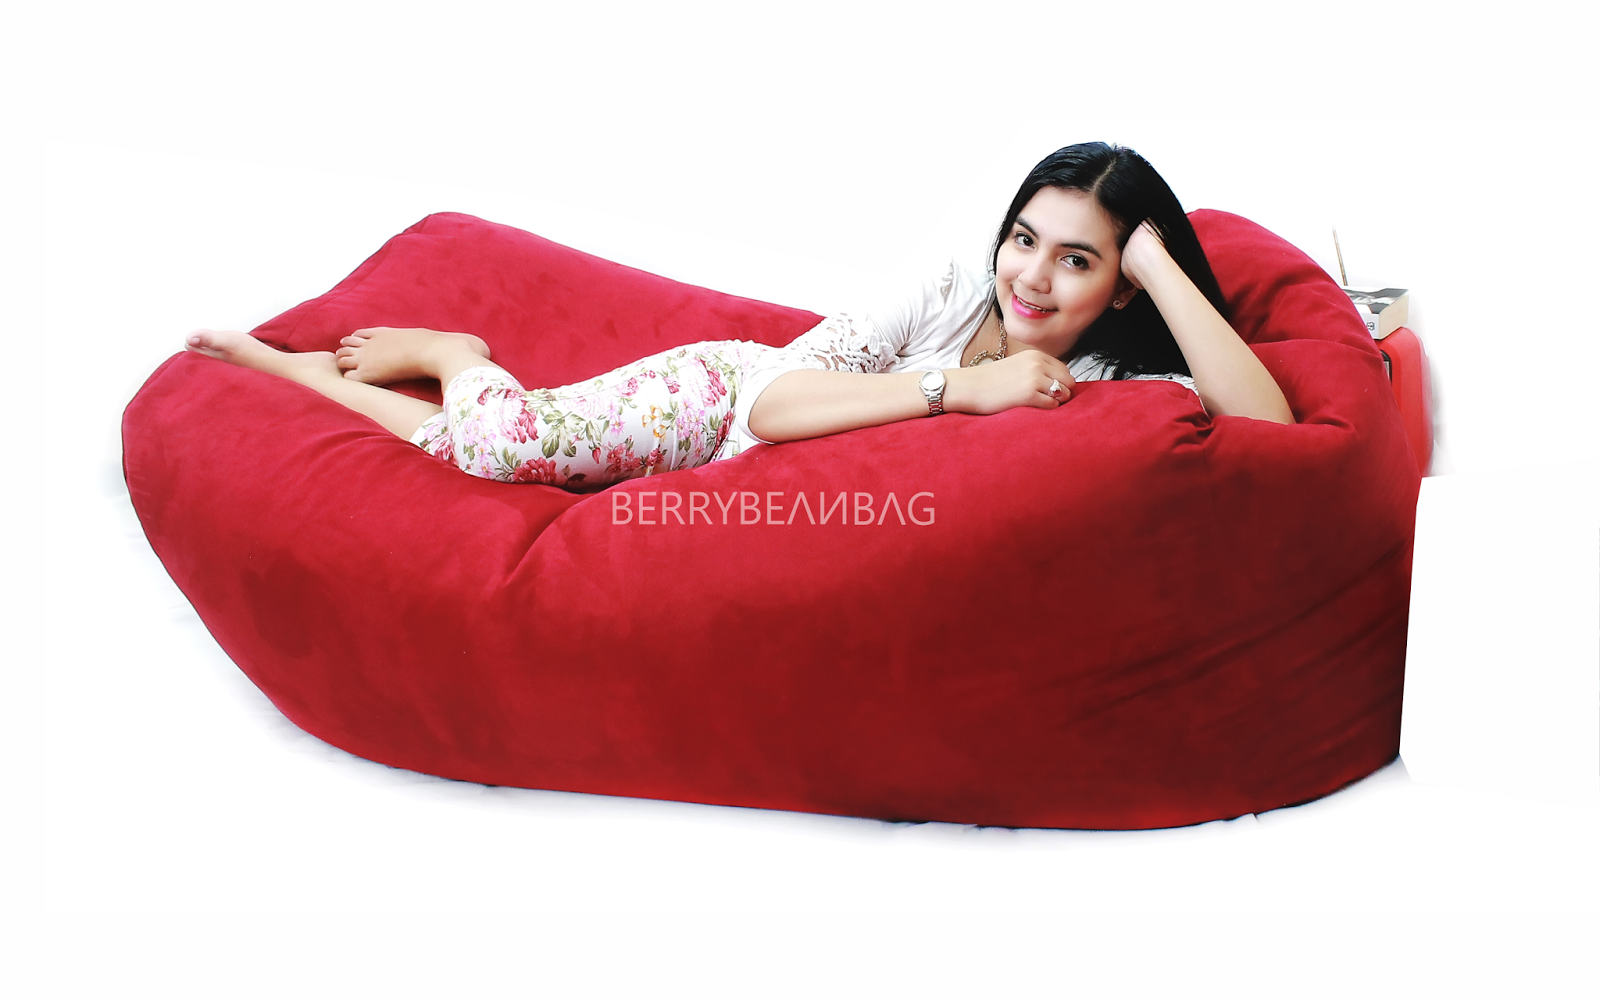 Jual Beanbag Suede Material Cover Only Berrybeanbag